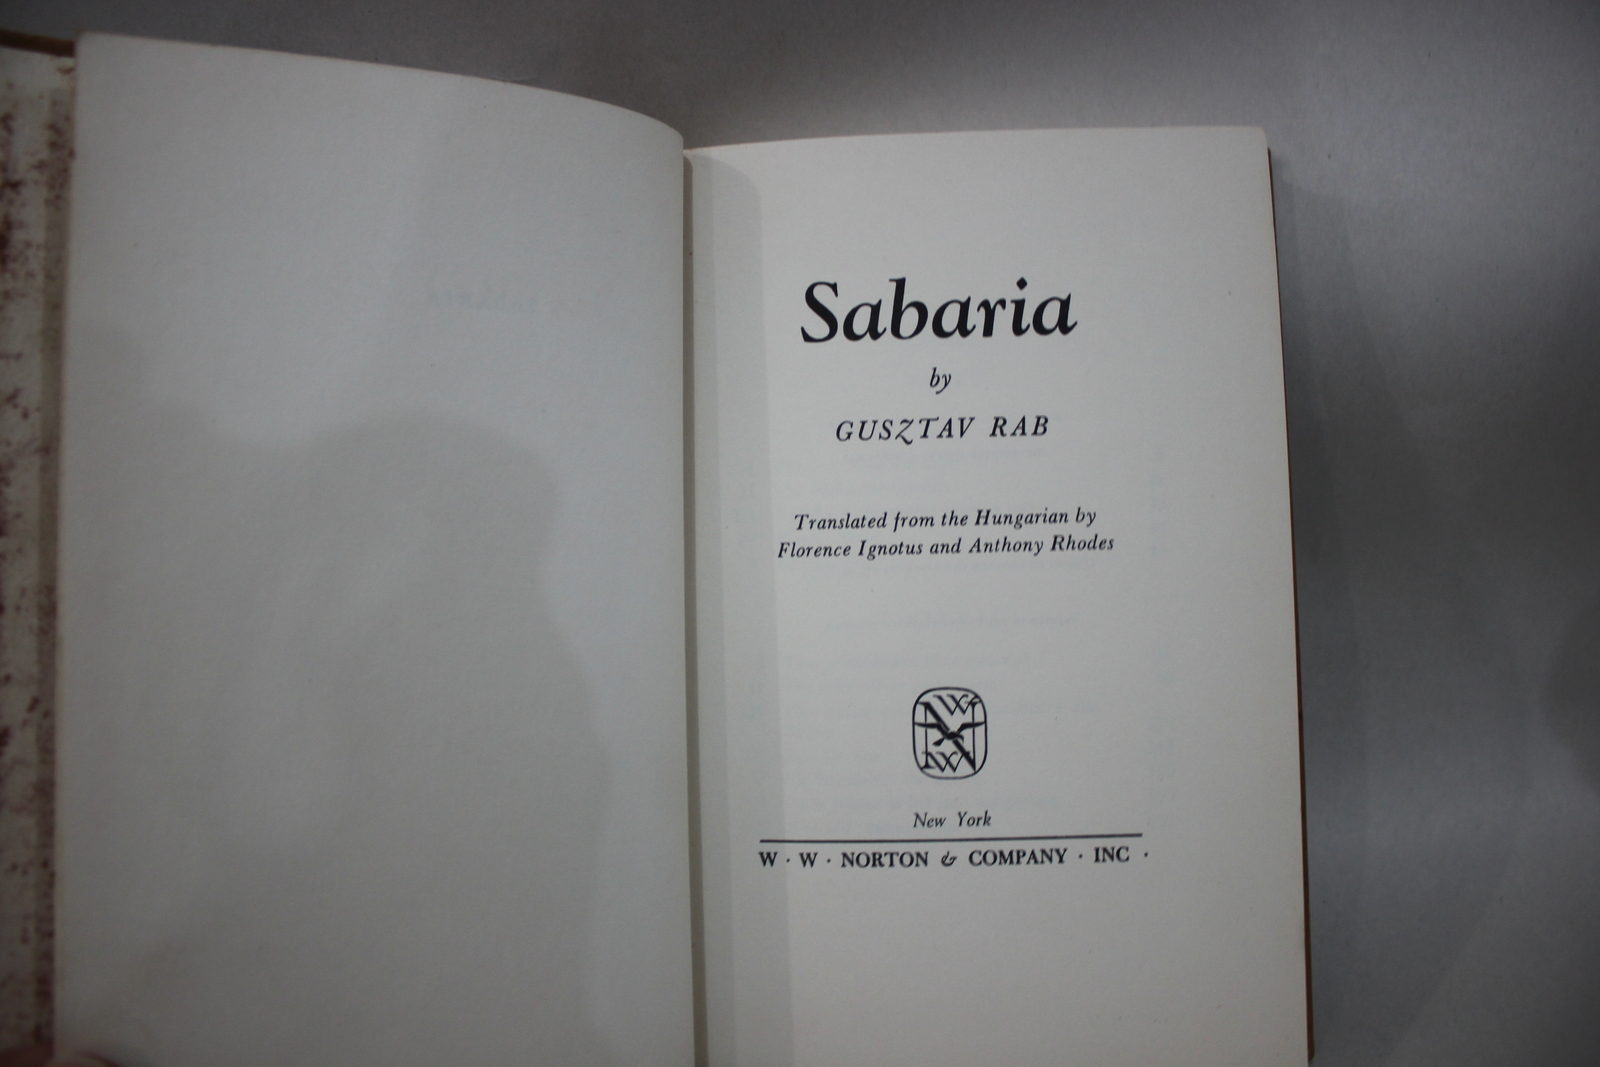 Sabaria Hardback Book by: GusZtav Rab First American Edition 1964